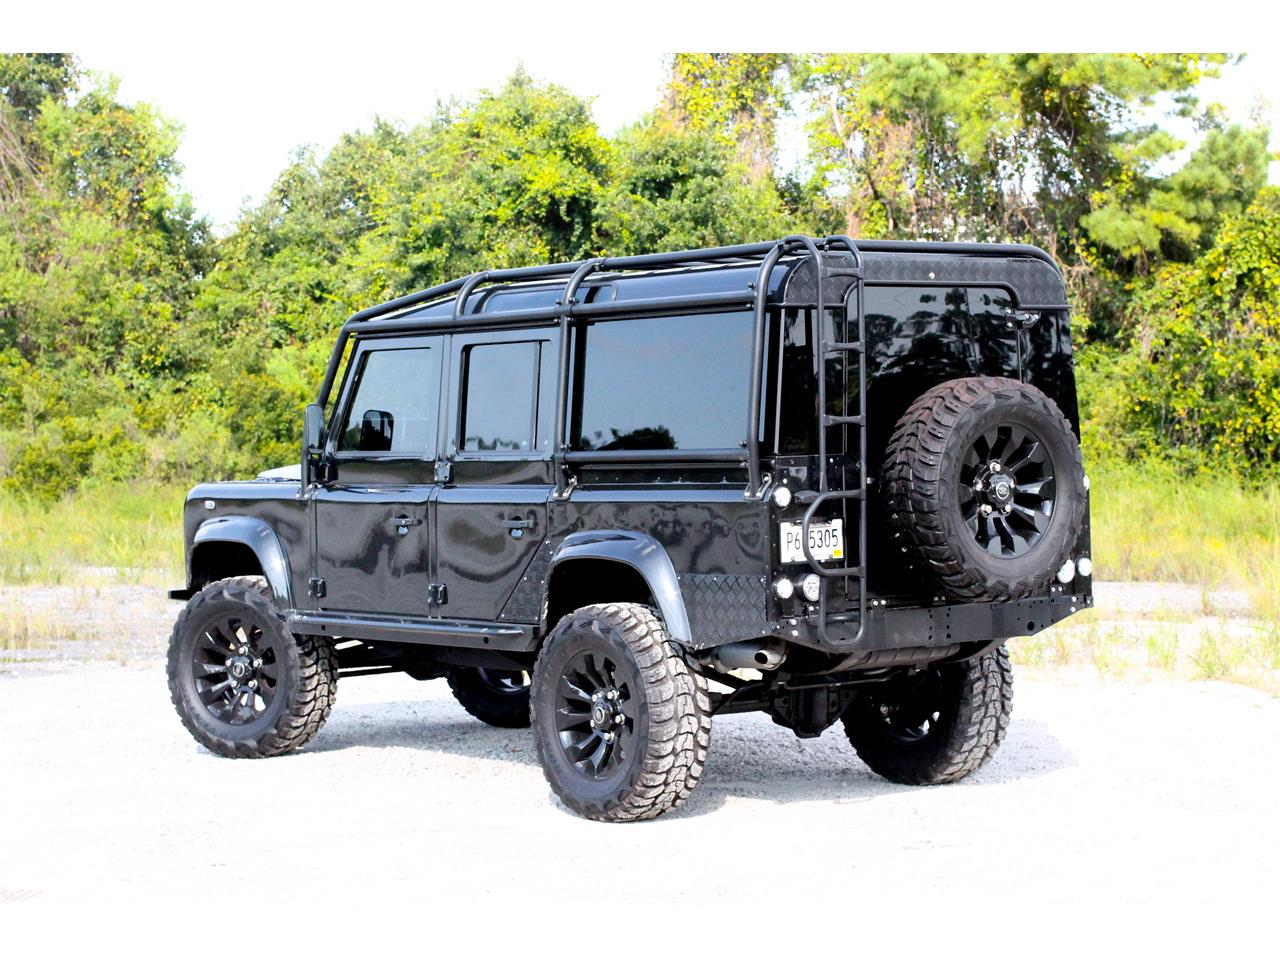 Large Picture of '90 Land Rover Defender located in Mount Pleasant South Carolina - $59,000.00 Offered by a Private Seller - LR1M